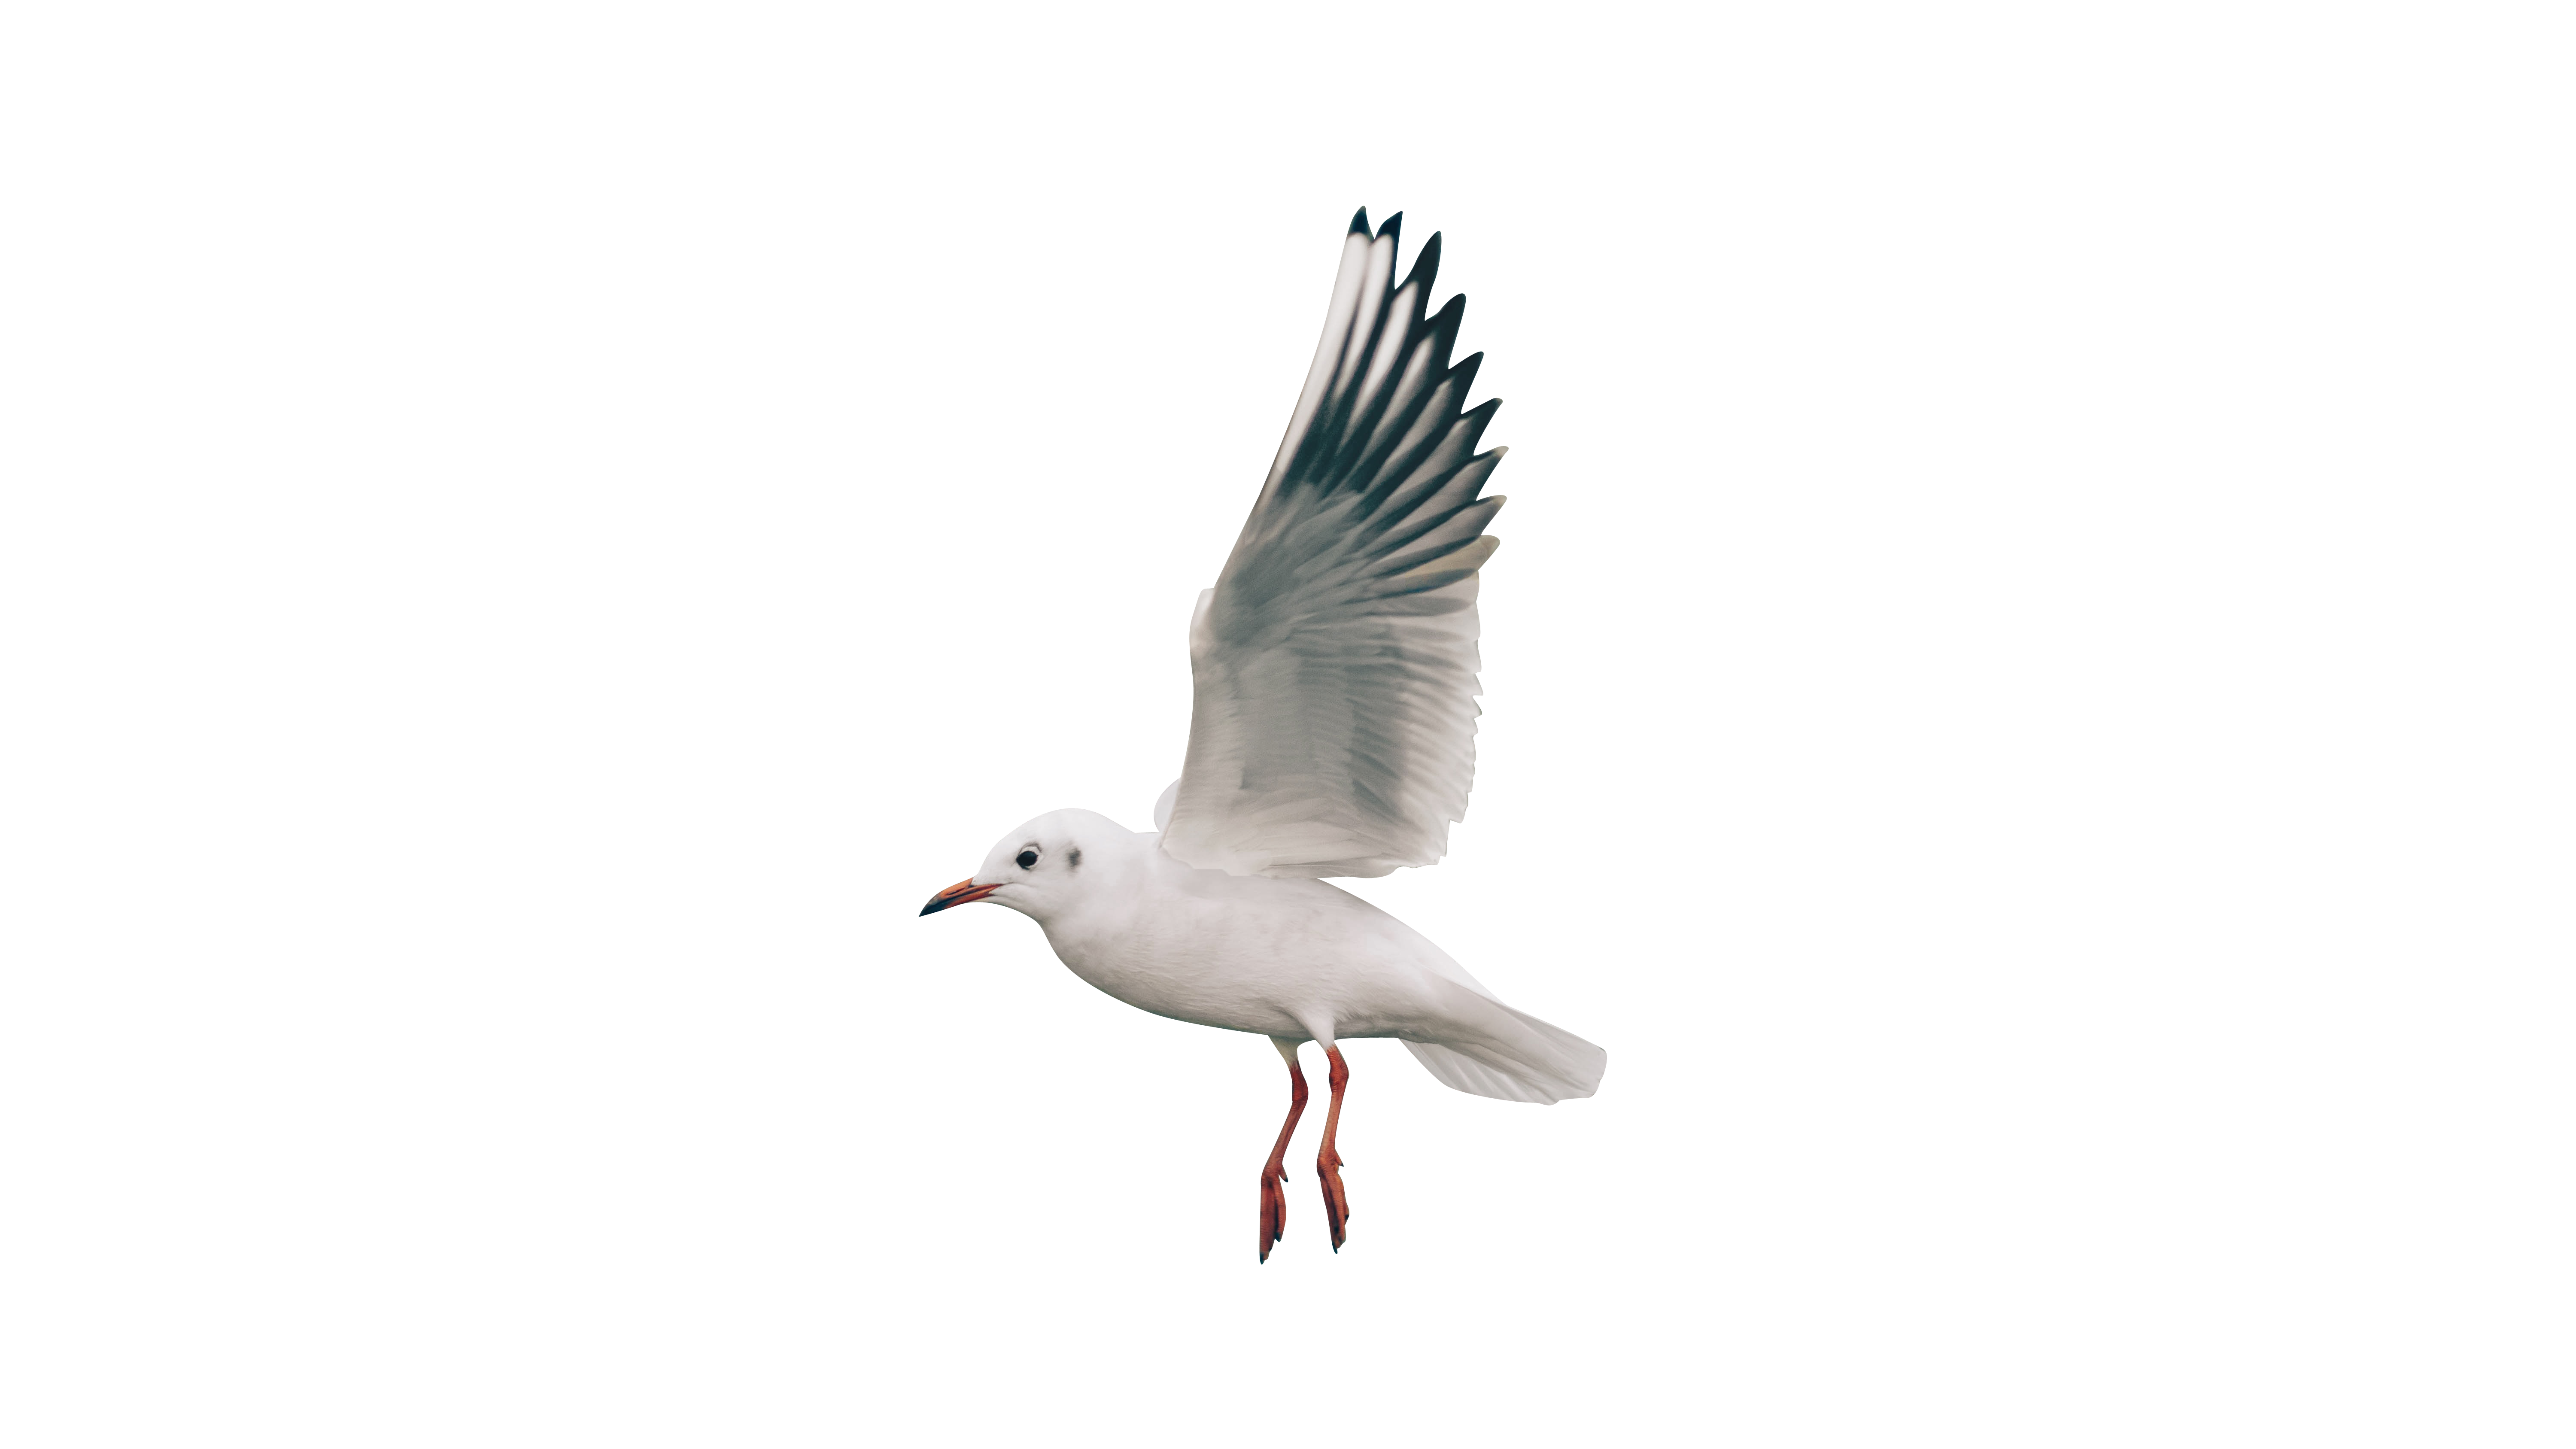 White bird flying Transparent Background PNG